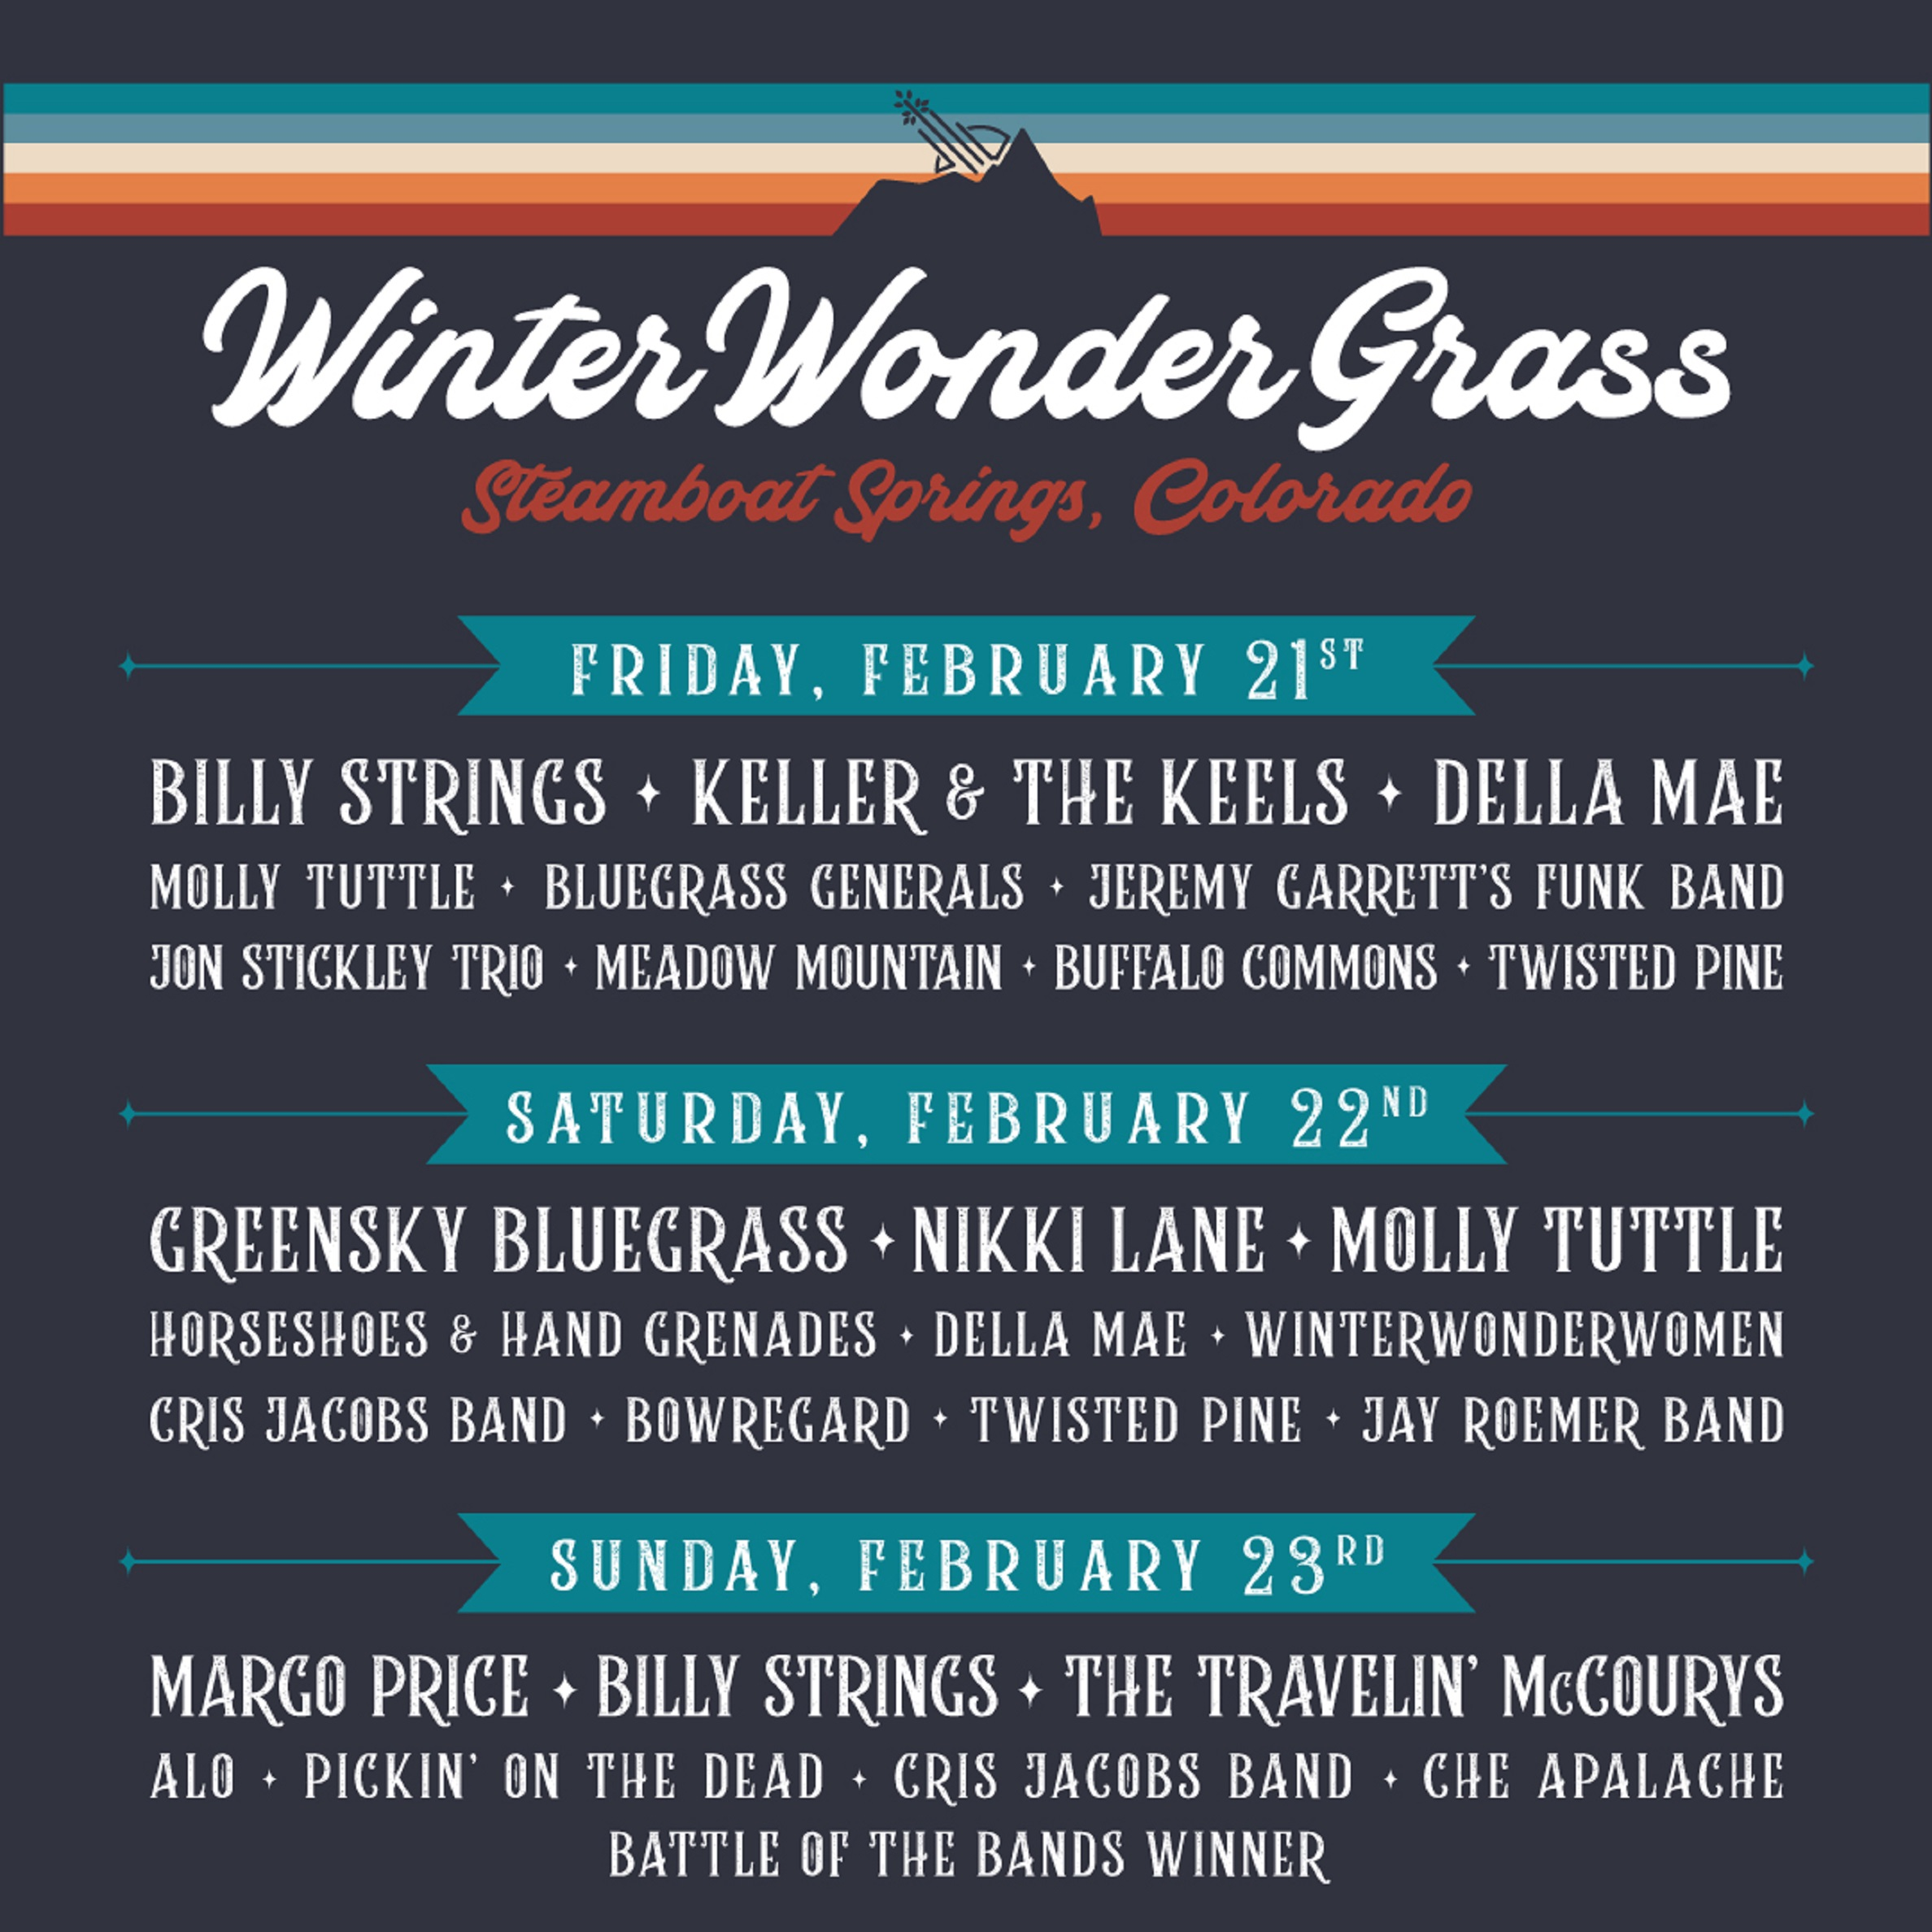 Greensky Bluegrass, Billy Strings x 2 & Margo Price To Headline Colorado-Edition of WinterWonderGrass